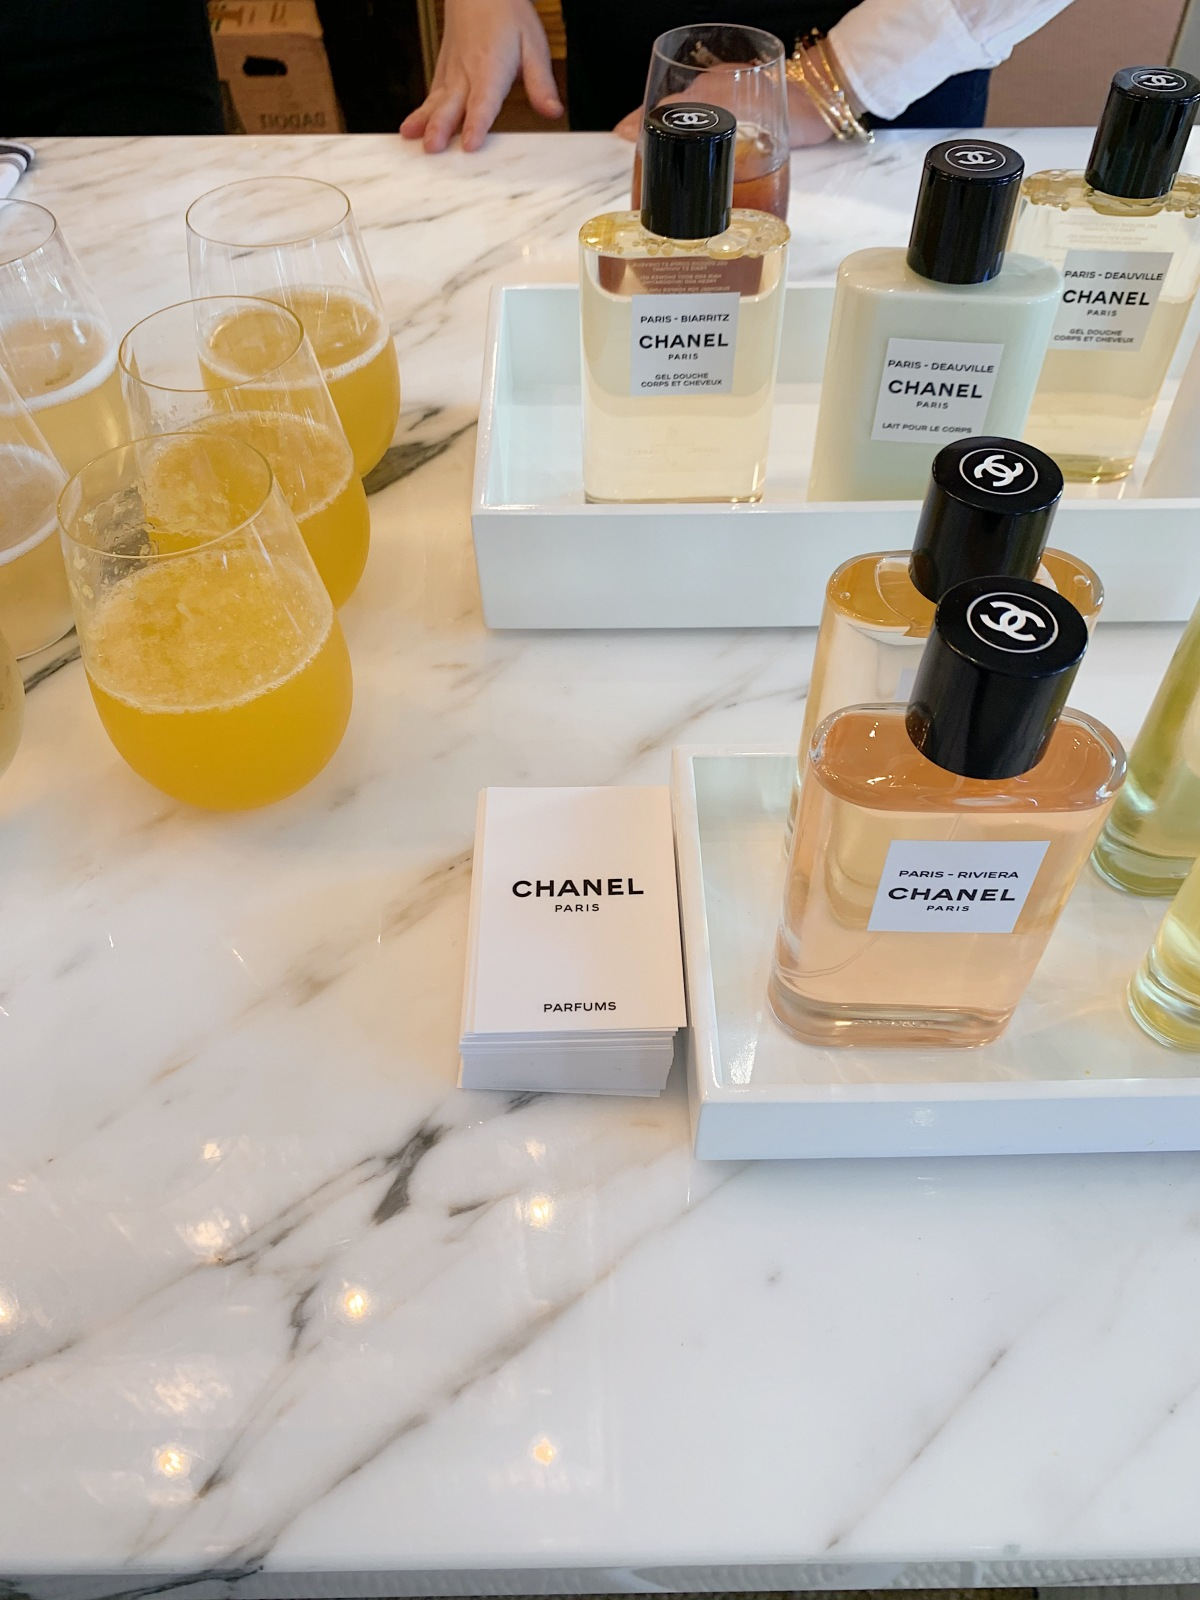 Chanel Beauty, Chanel perfume, Chance by Chanel, Palisades Village, Pacific Palisades shopping, beauty event, LA events, style blogger, beauty blogger, lifestyle blogger, lookbook, ootd, Chanel, vintage, luxury, self care